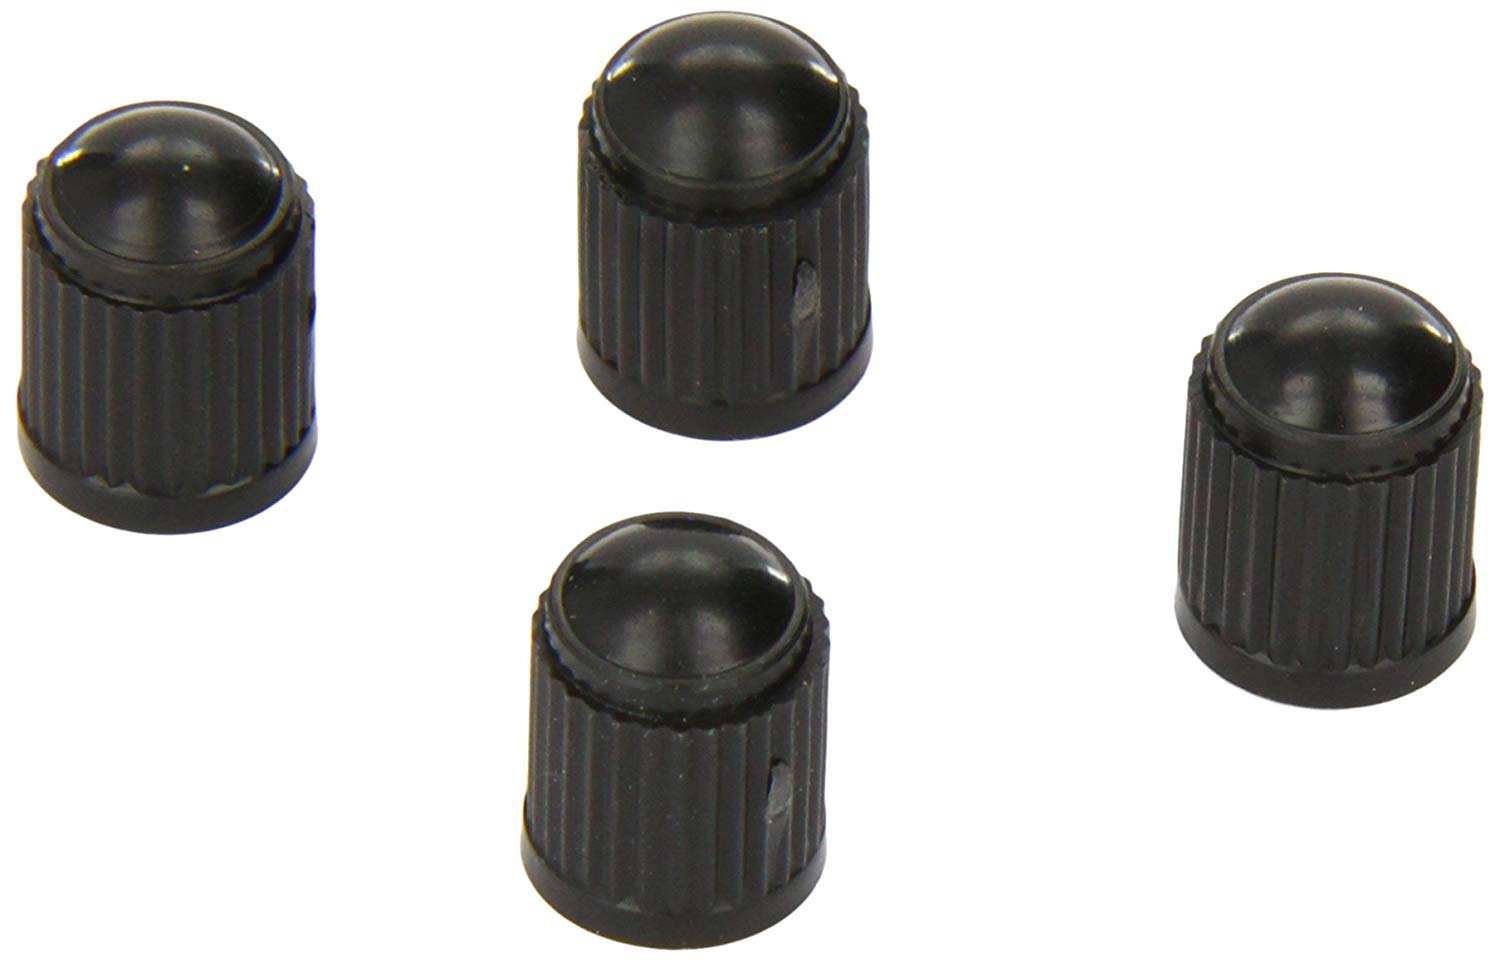 Silverline Tyre Dust Caps – Set of 4 (add-on item) @Amazon